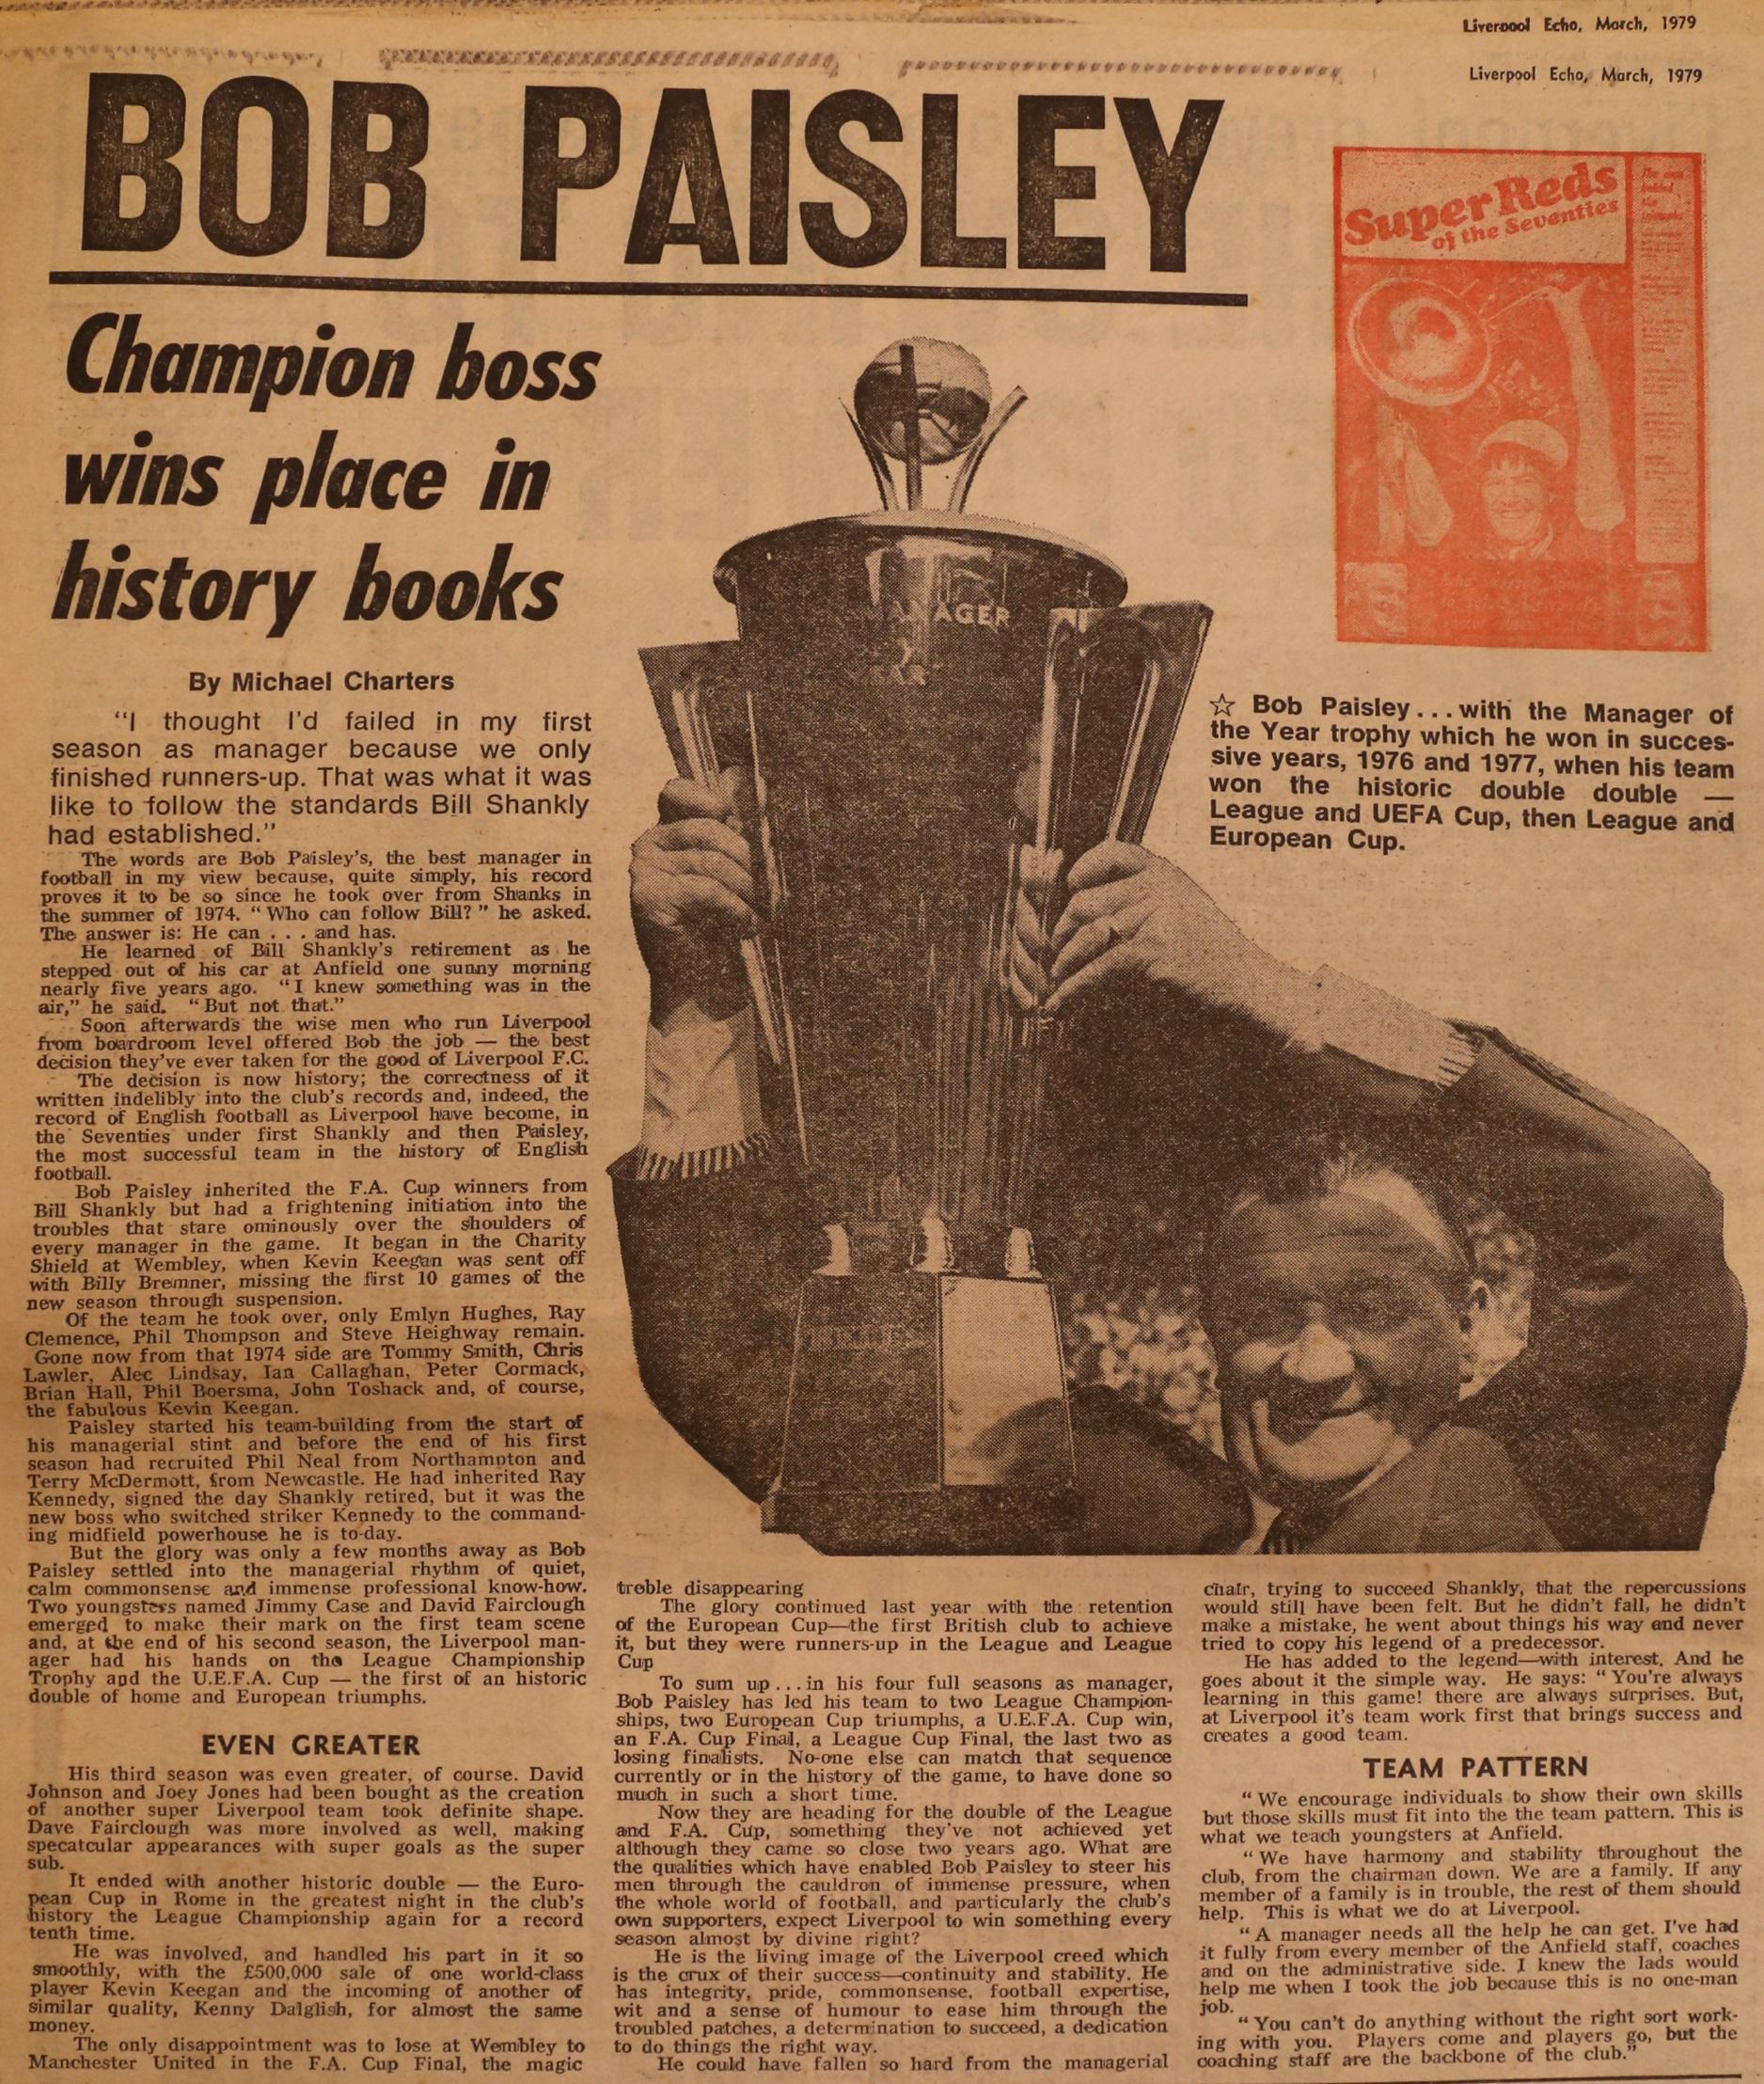 Paisley profile in the Liverpool Echo - March 1979